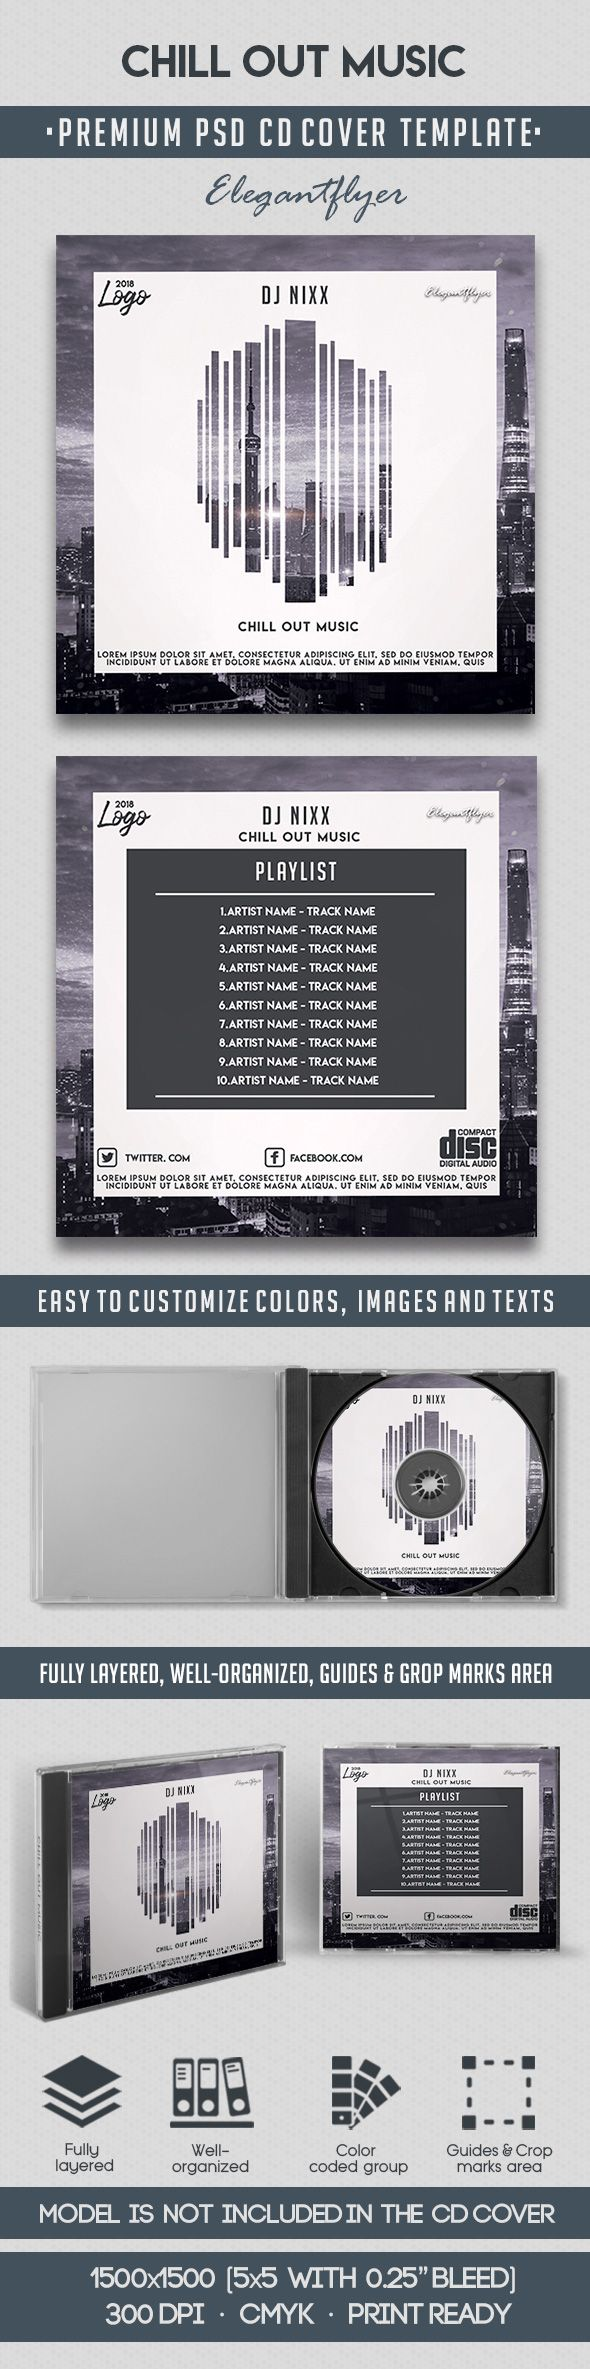 Chill Out Music – Premium CD Cover PSD Template